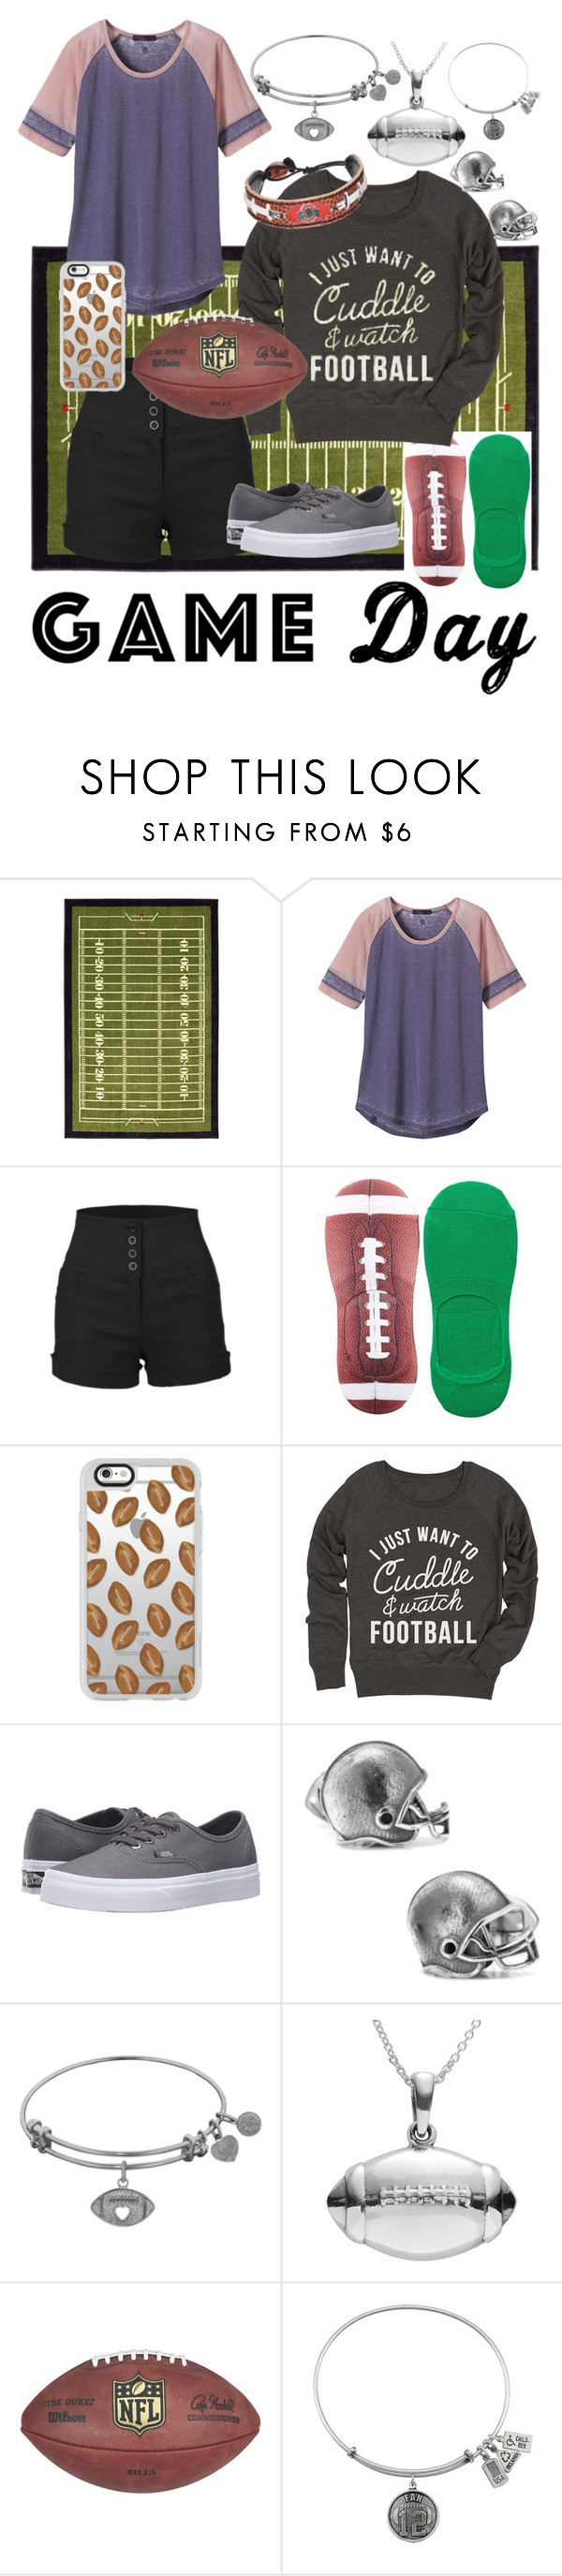 """""""Game Day"""" by weareforeveralone ❤ liked on Polyvore featuring prAna, LE3NO, Free Press, Casetify, Vans, Cufflinks, Inc., Journee Collection and GameWear"""